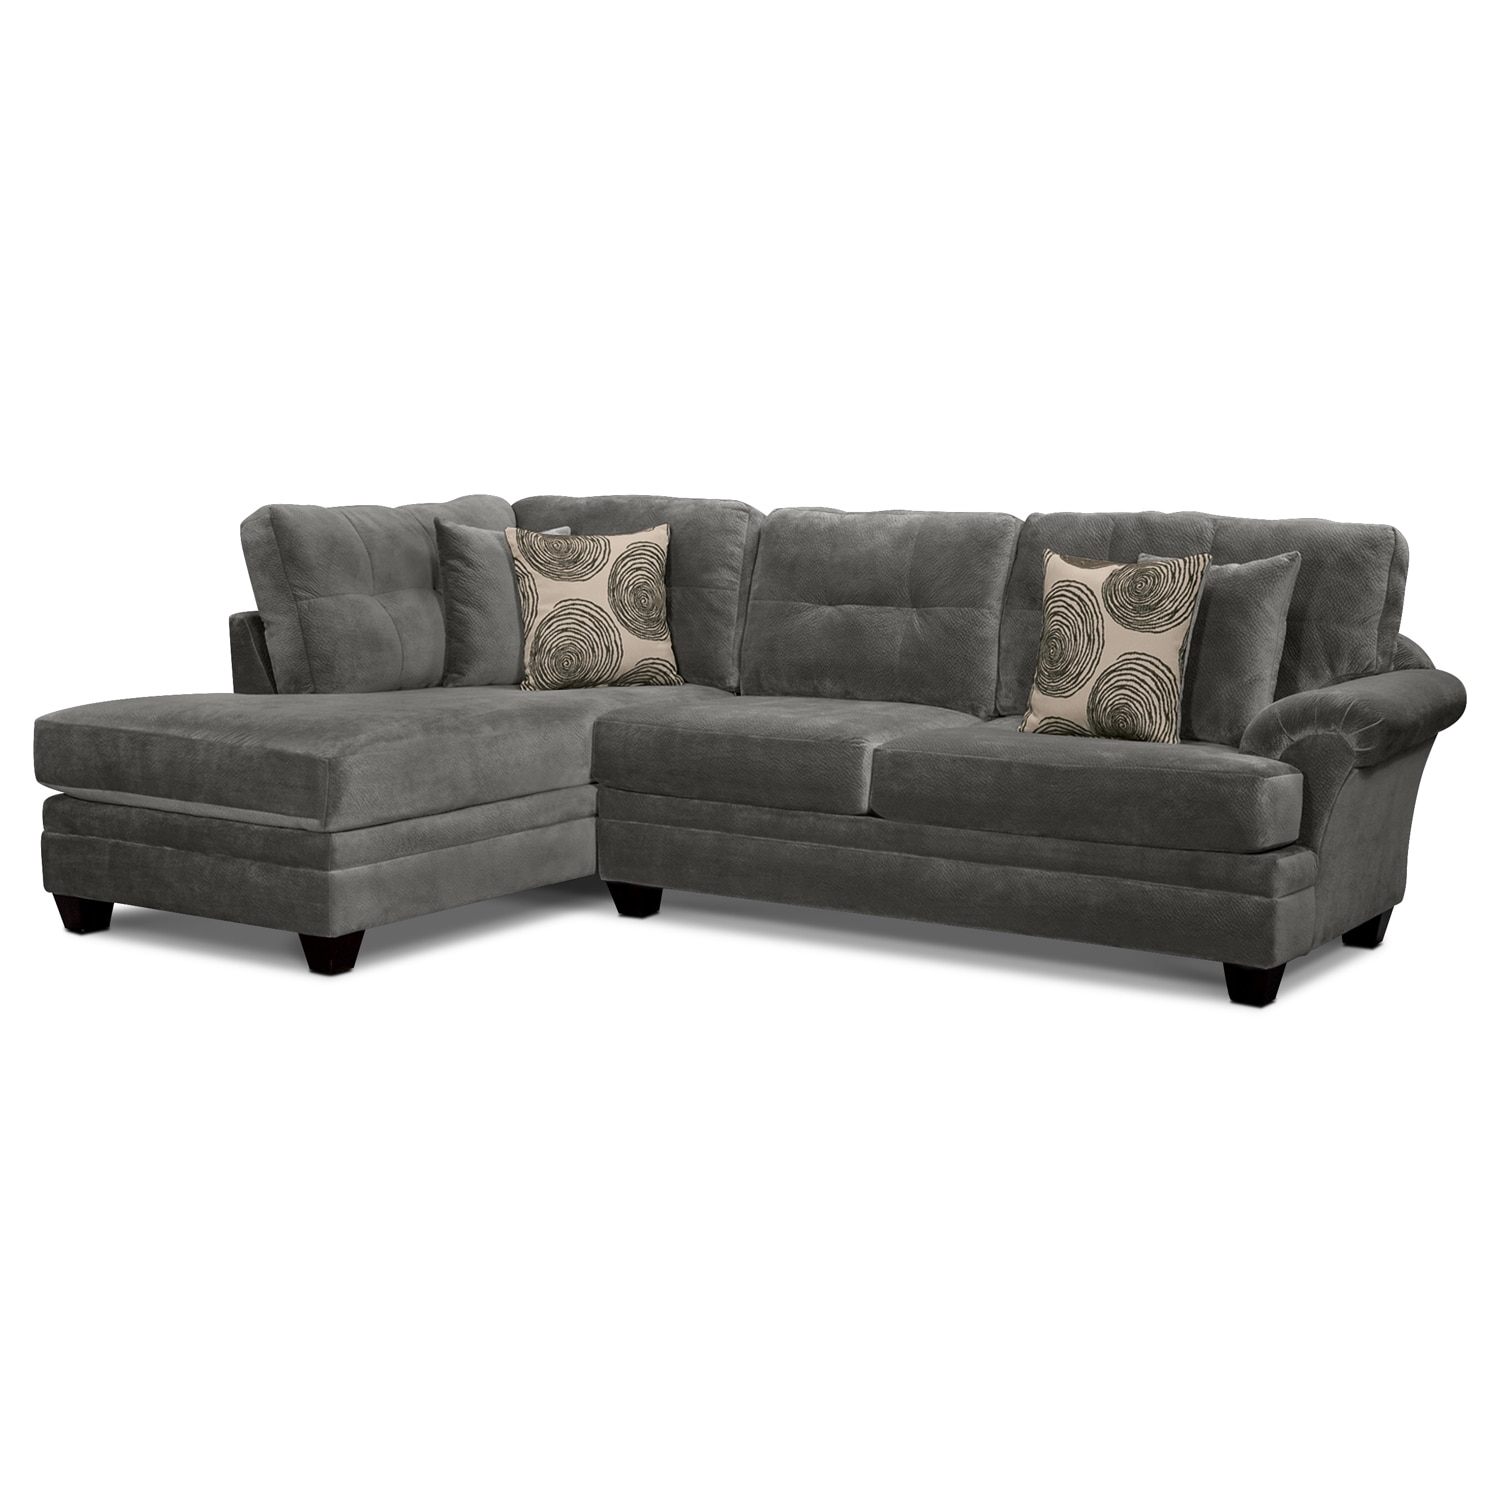 Cordelle 2-Piece Left-Facing Chaise Sectional - Gray